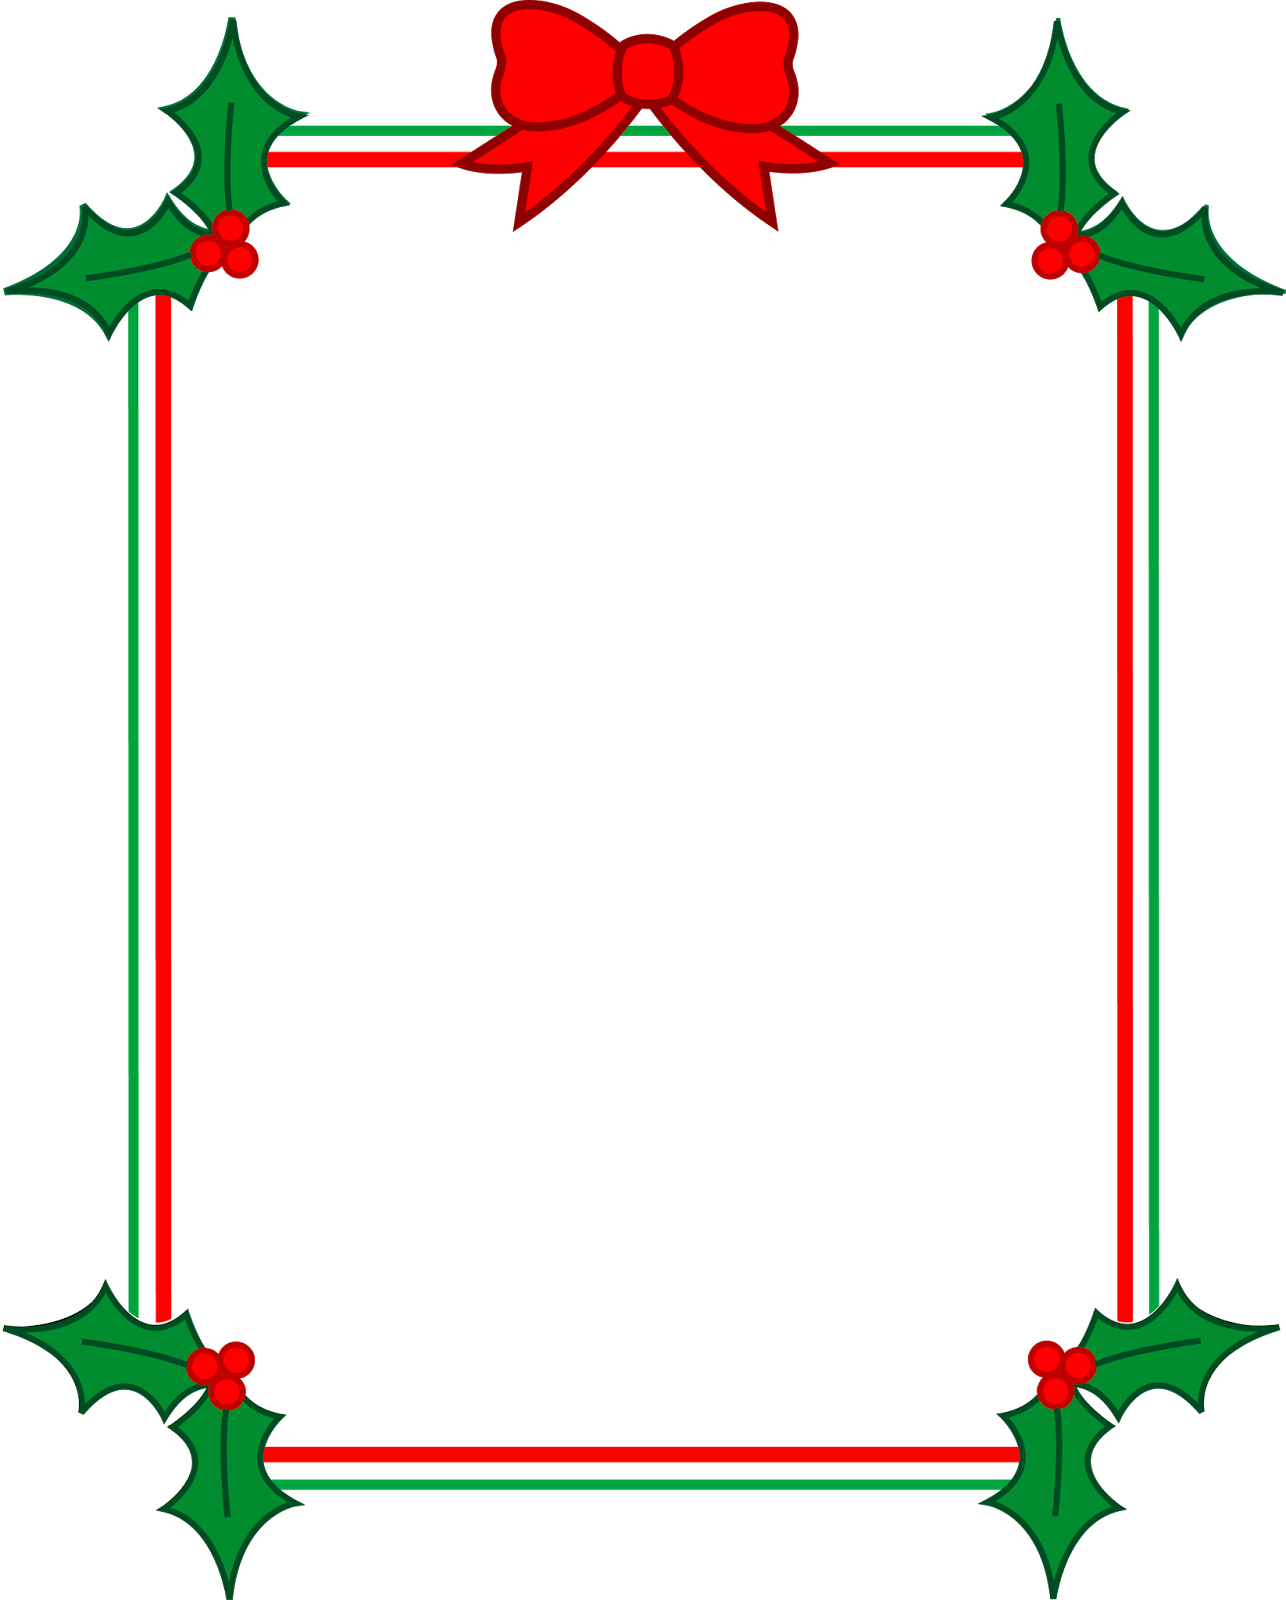 Christian christmas clipart free jpg transparent stock Free Printable Religious Clipart at GetDrawings.com | Free for ... jpg transparent stock